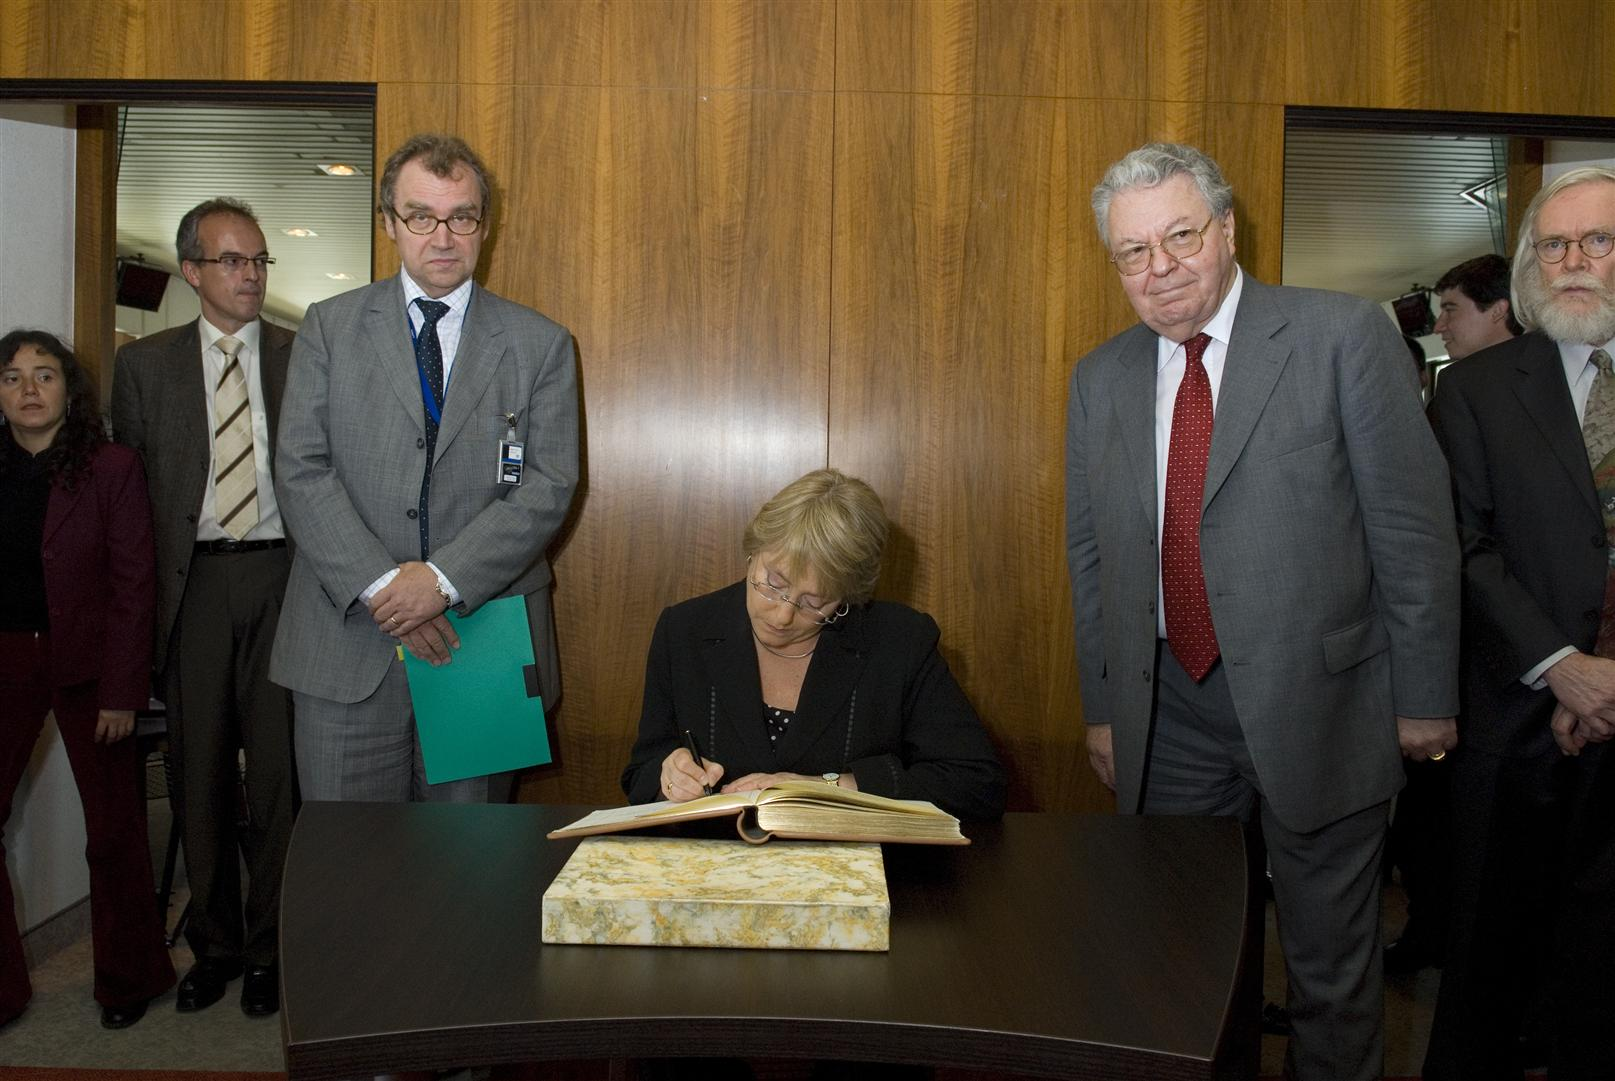 H.E. Mrs Michelle Bachelet Jeria  President of Chile signing the golden book.